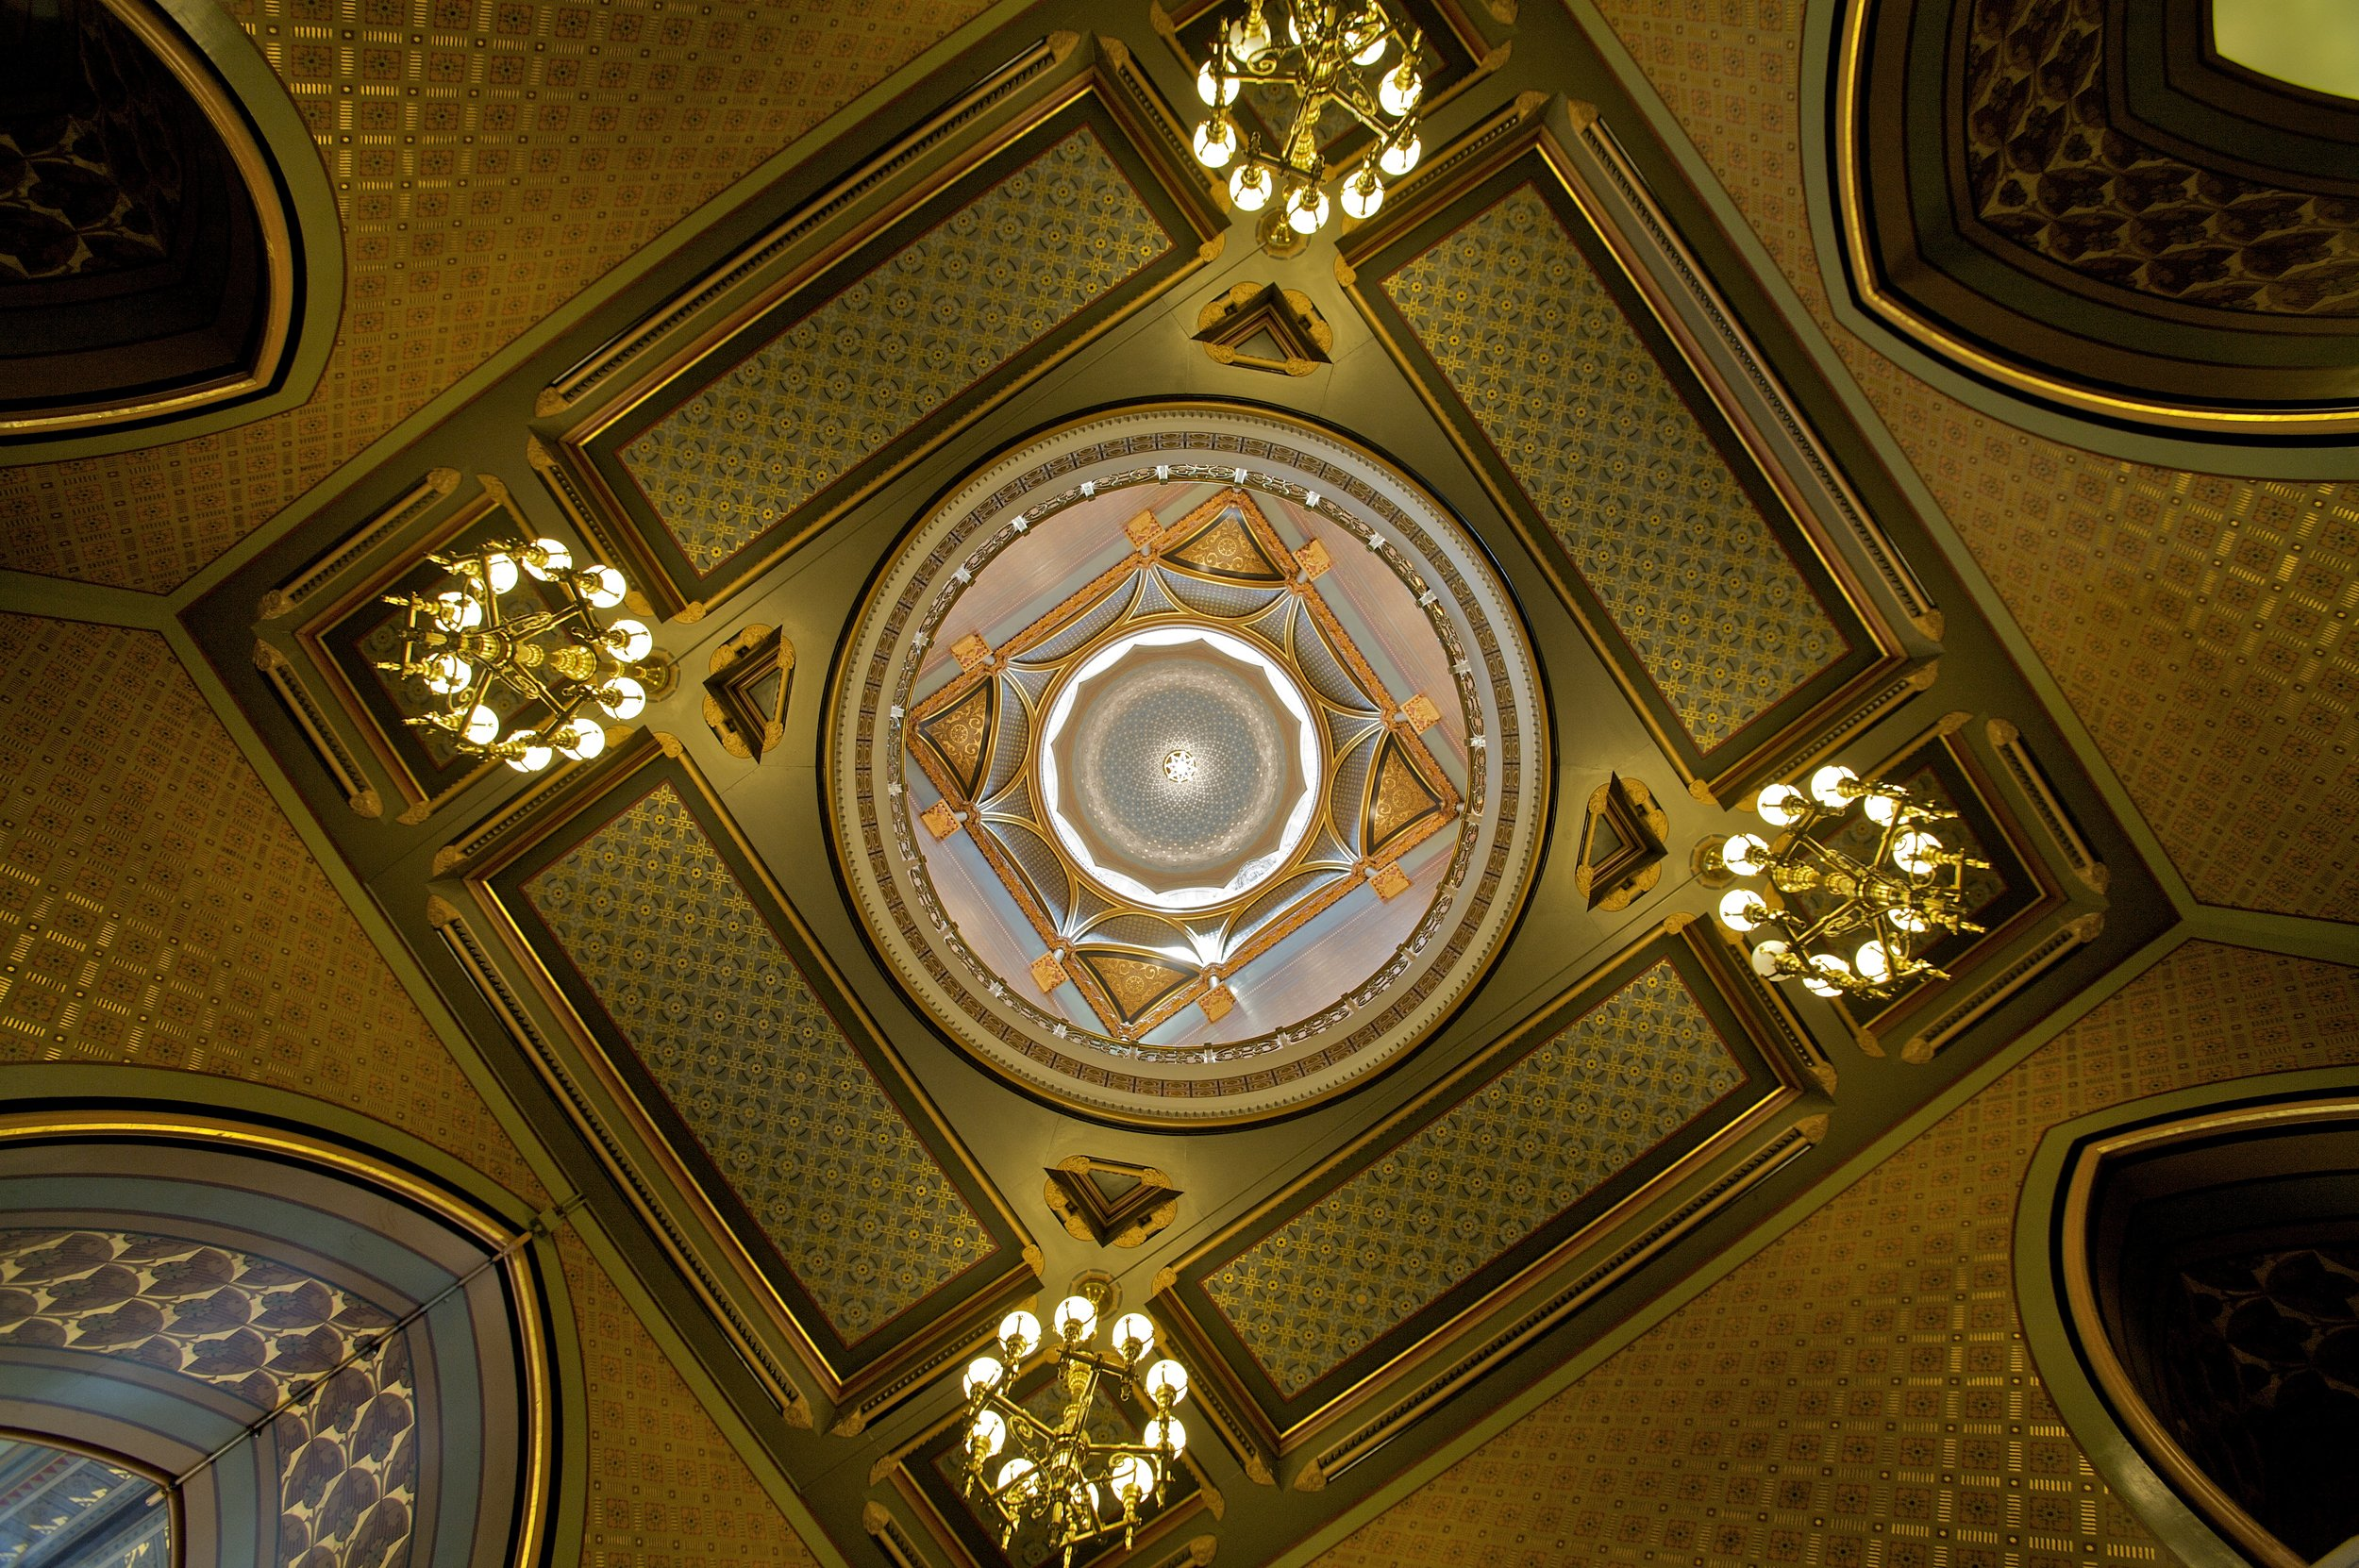 Looking up into the square rotunda of the Connecticut state capitol - 16mm, Canon 5D.